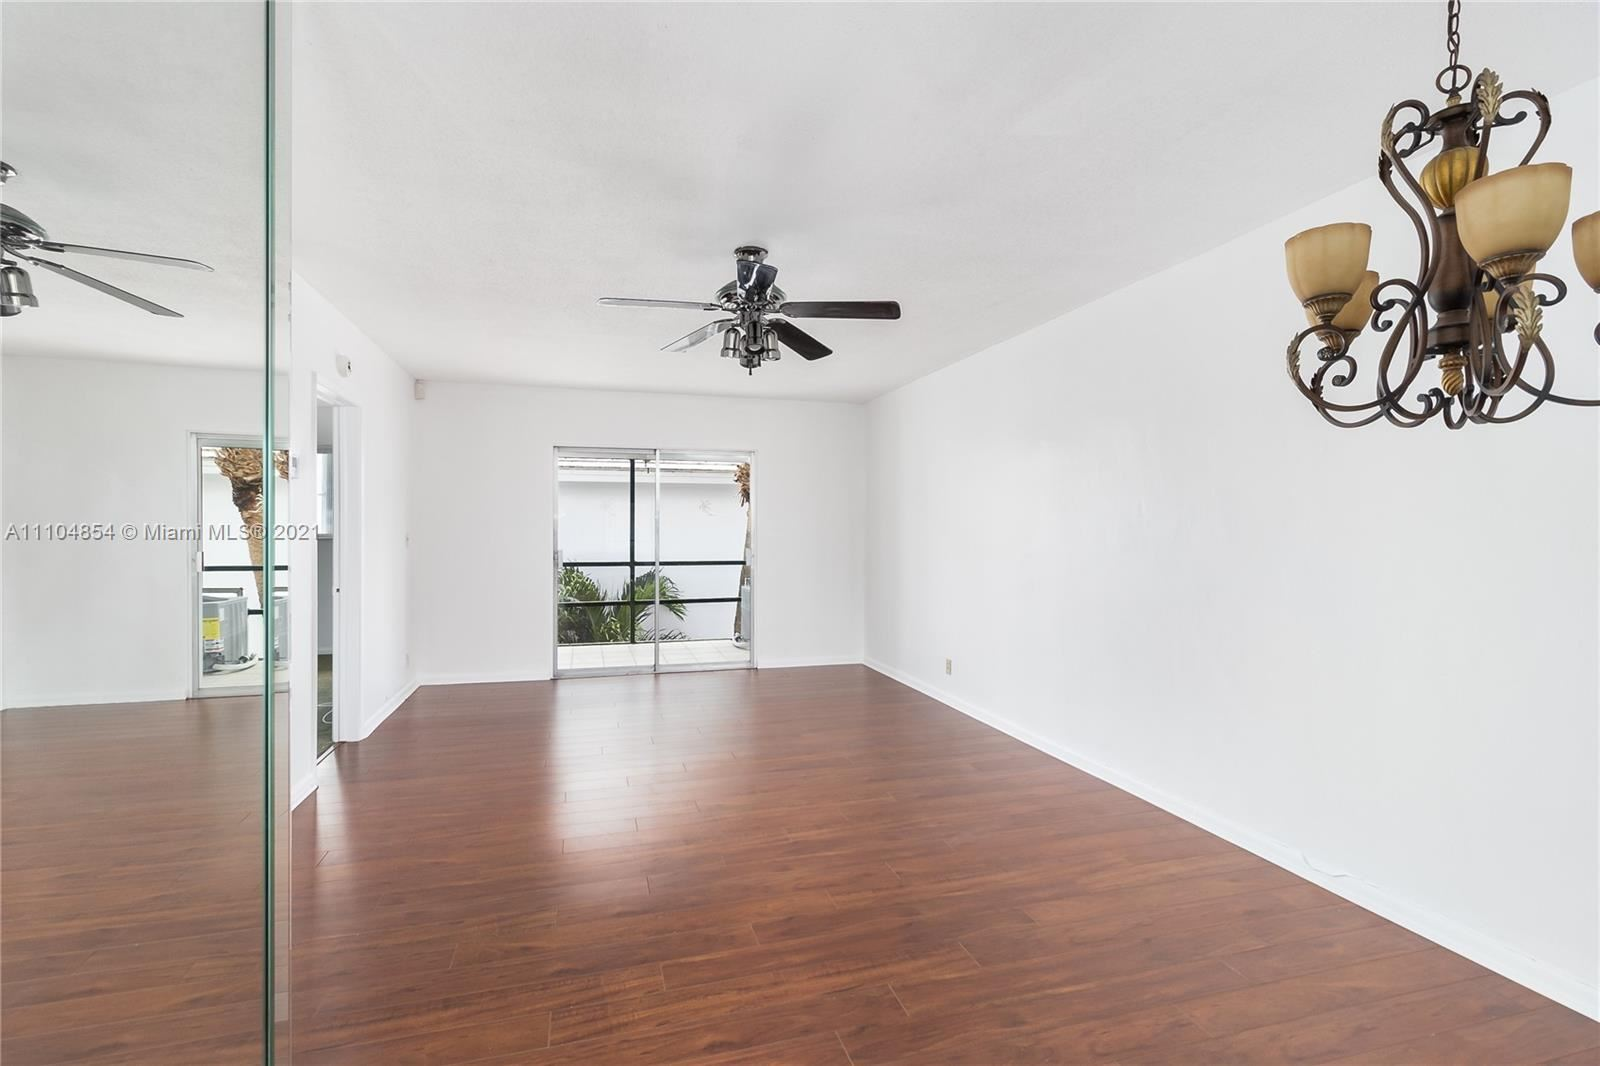 Photo of 2050 NE 39th St #N312, Lighthouse Point, FL 33064 (MLS # A11104854)